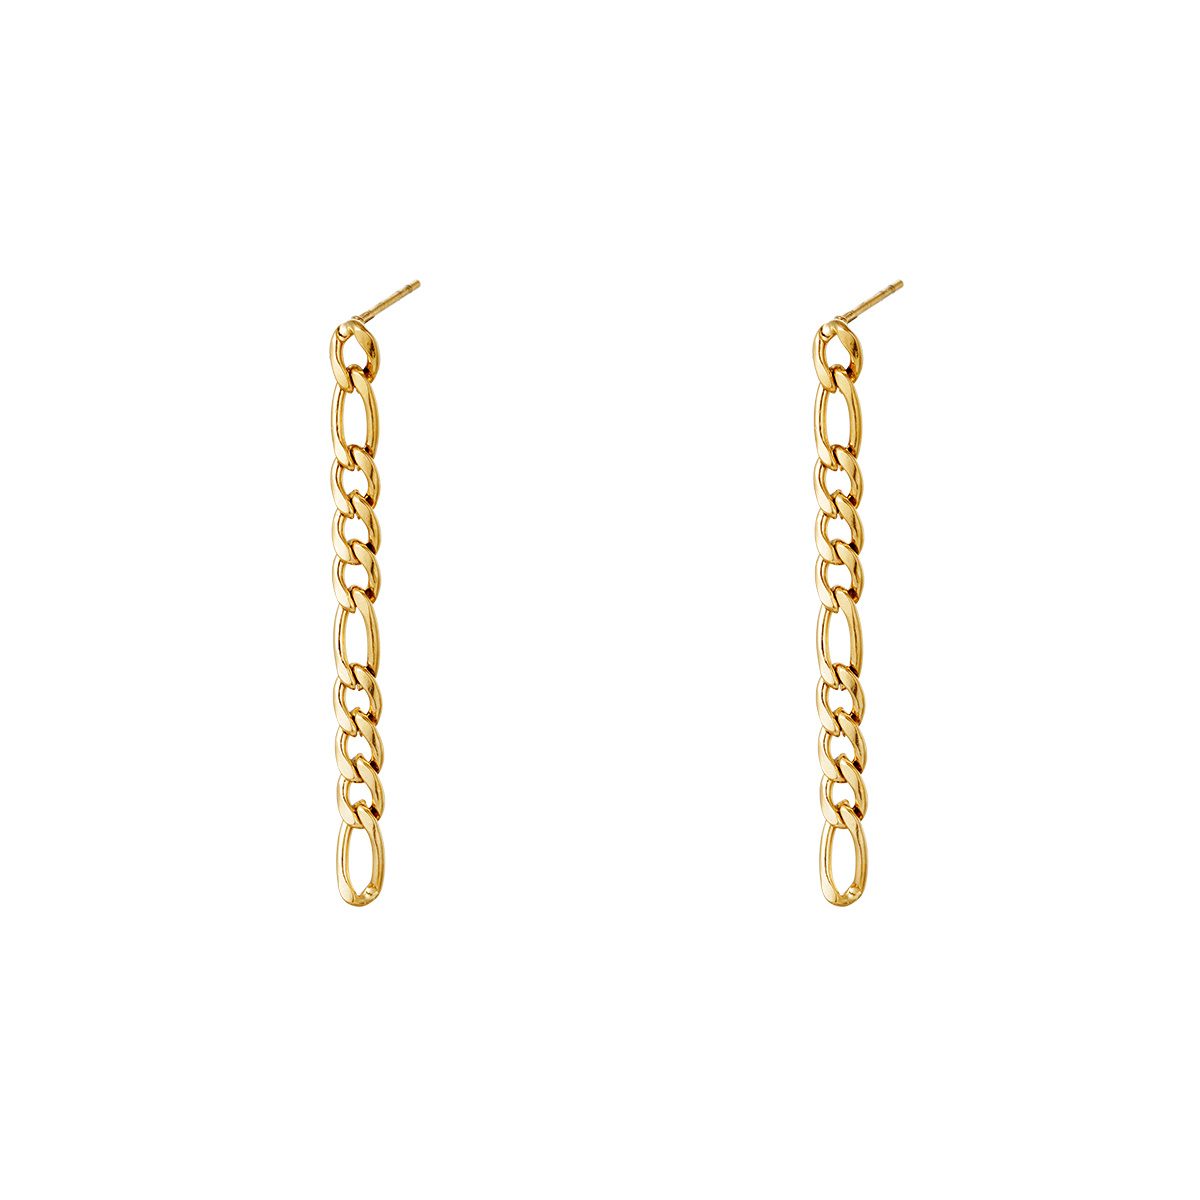 Vertical Gold Stainless Steel